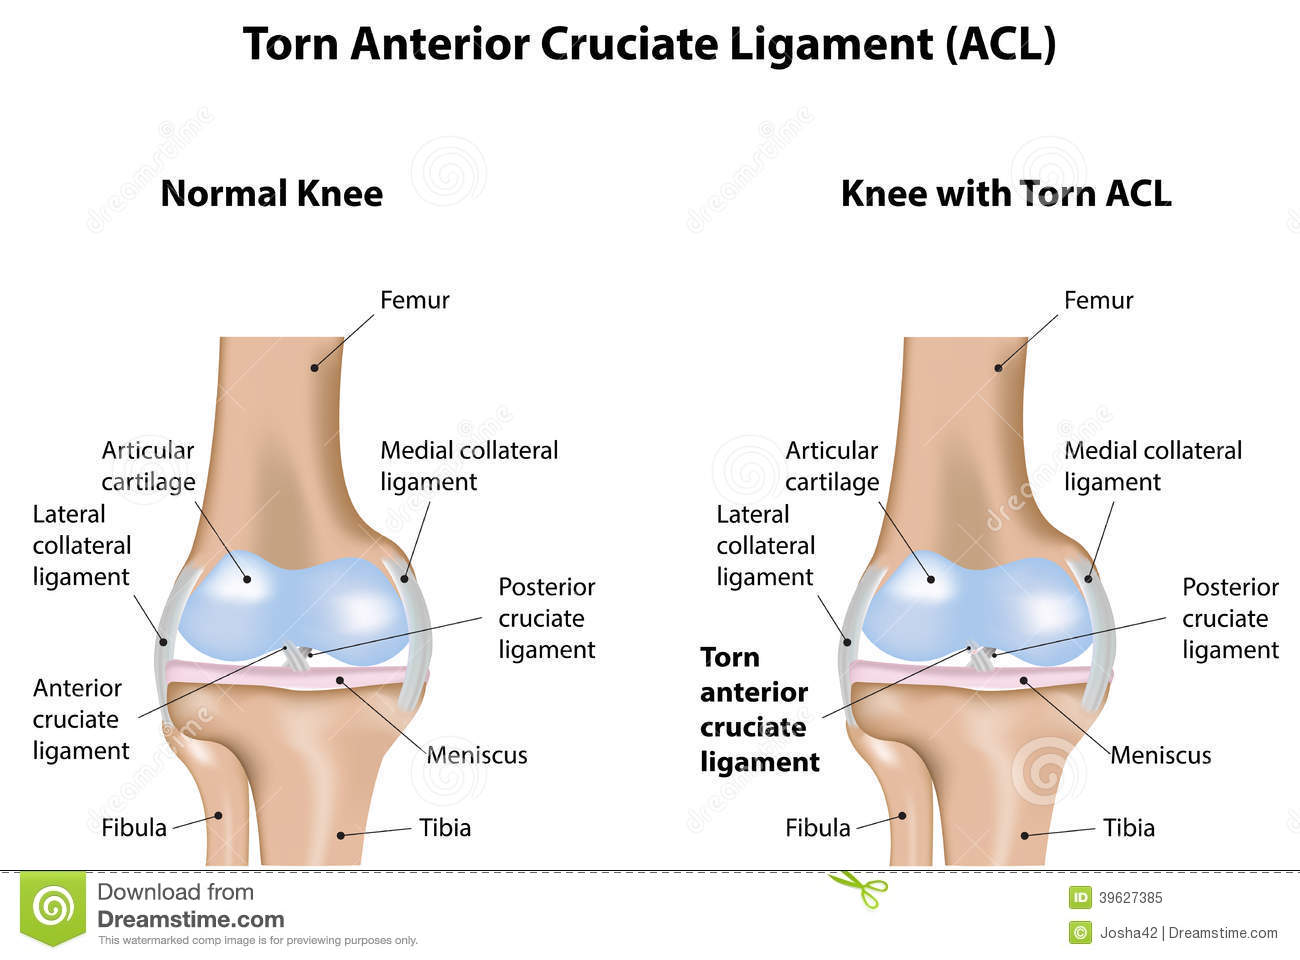 Royalty Free Stock Photo Knee Joint Torn Anterior Cruciate Ligament  mon Musculoskeletal Disease Image39627385